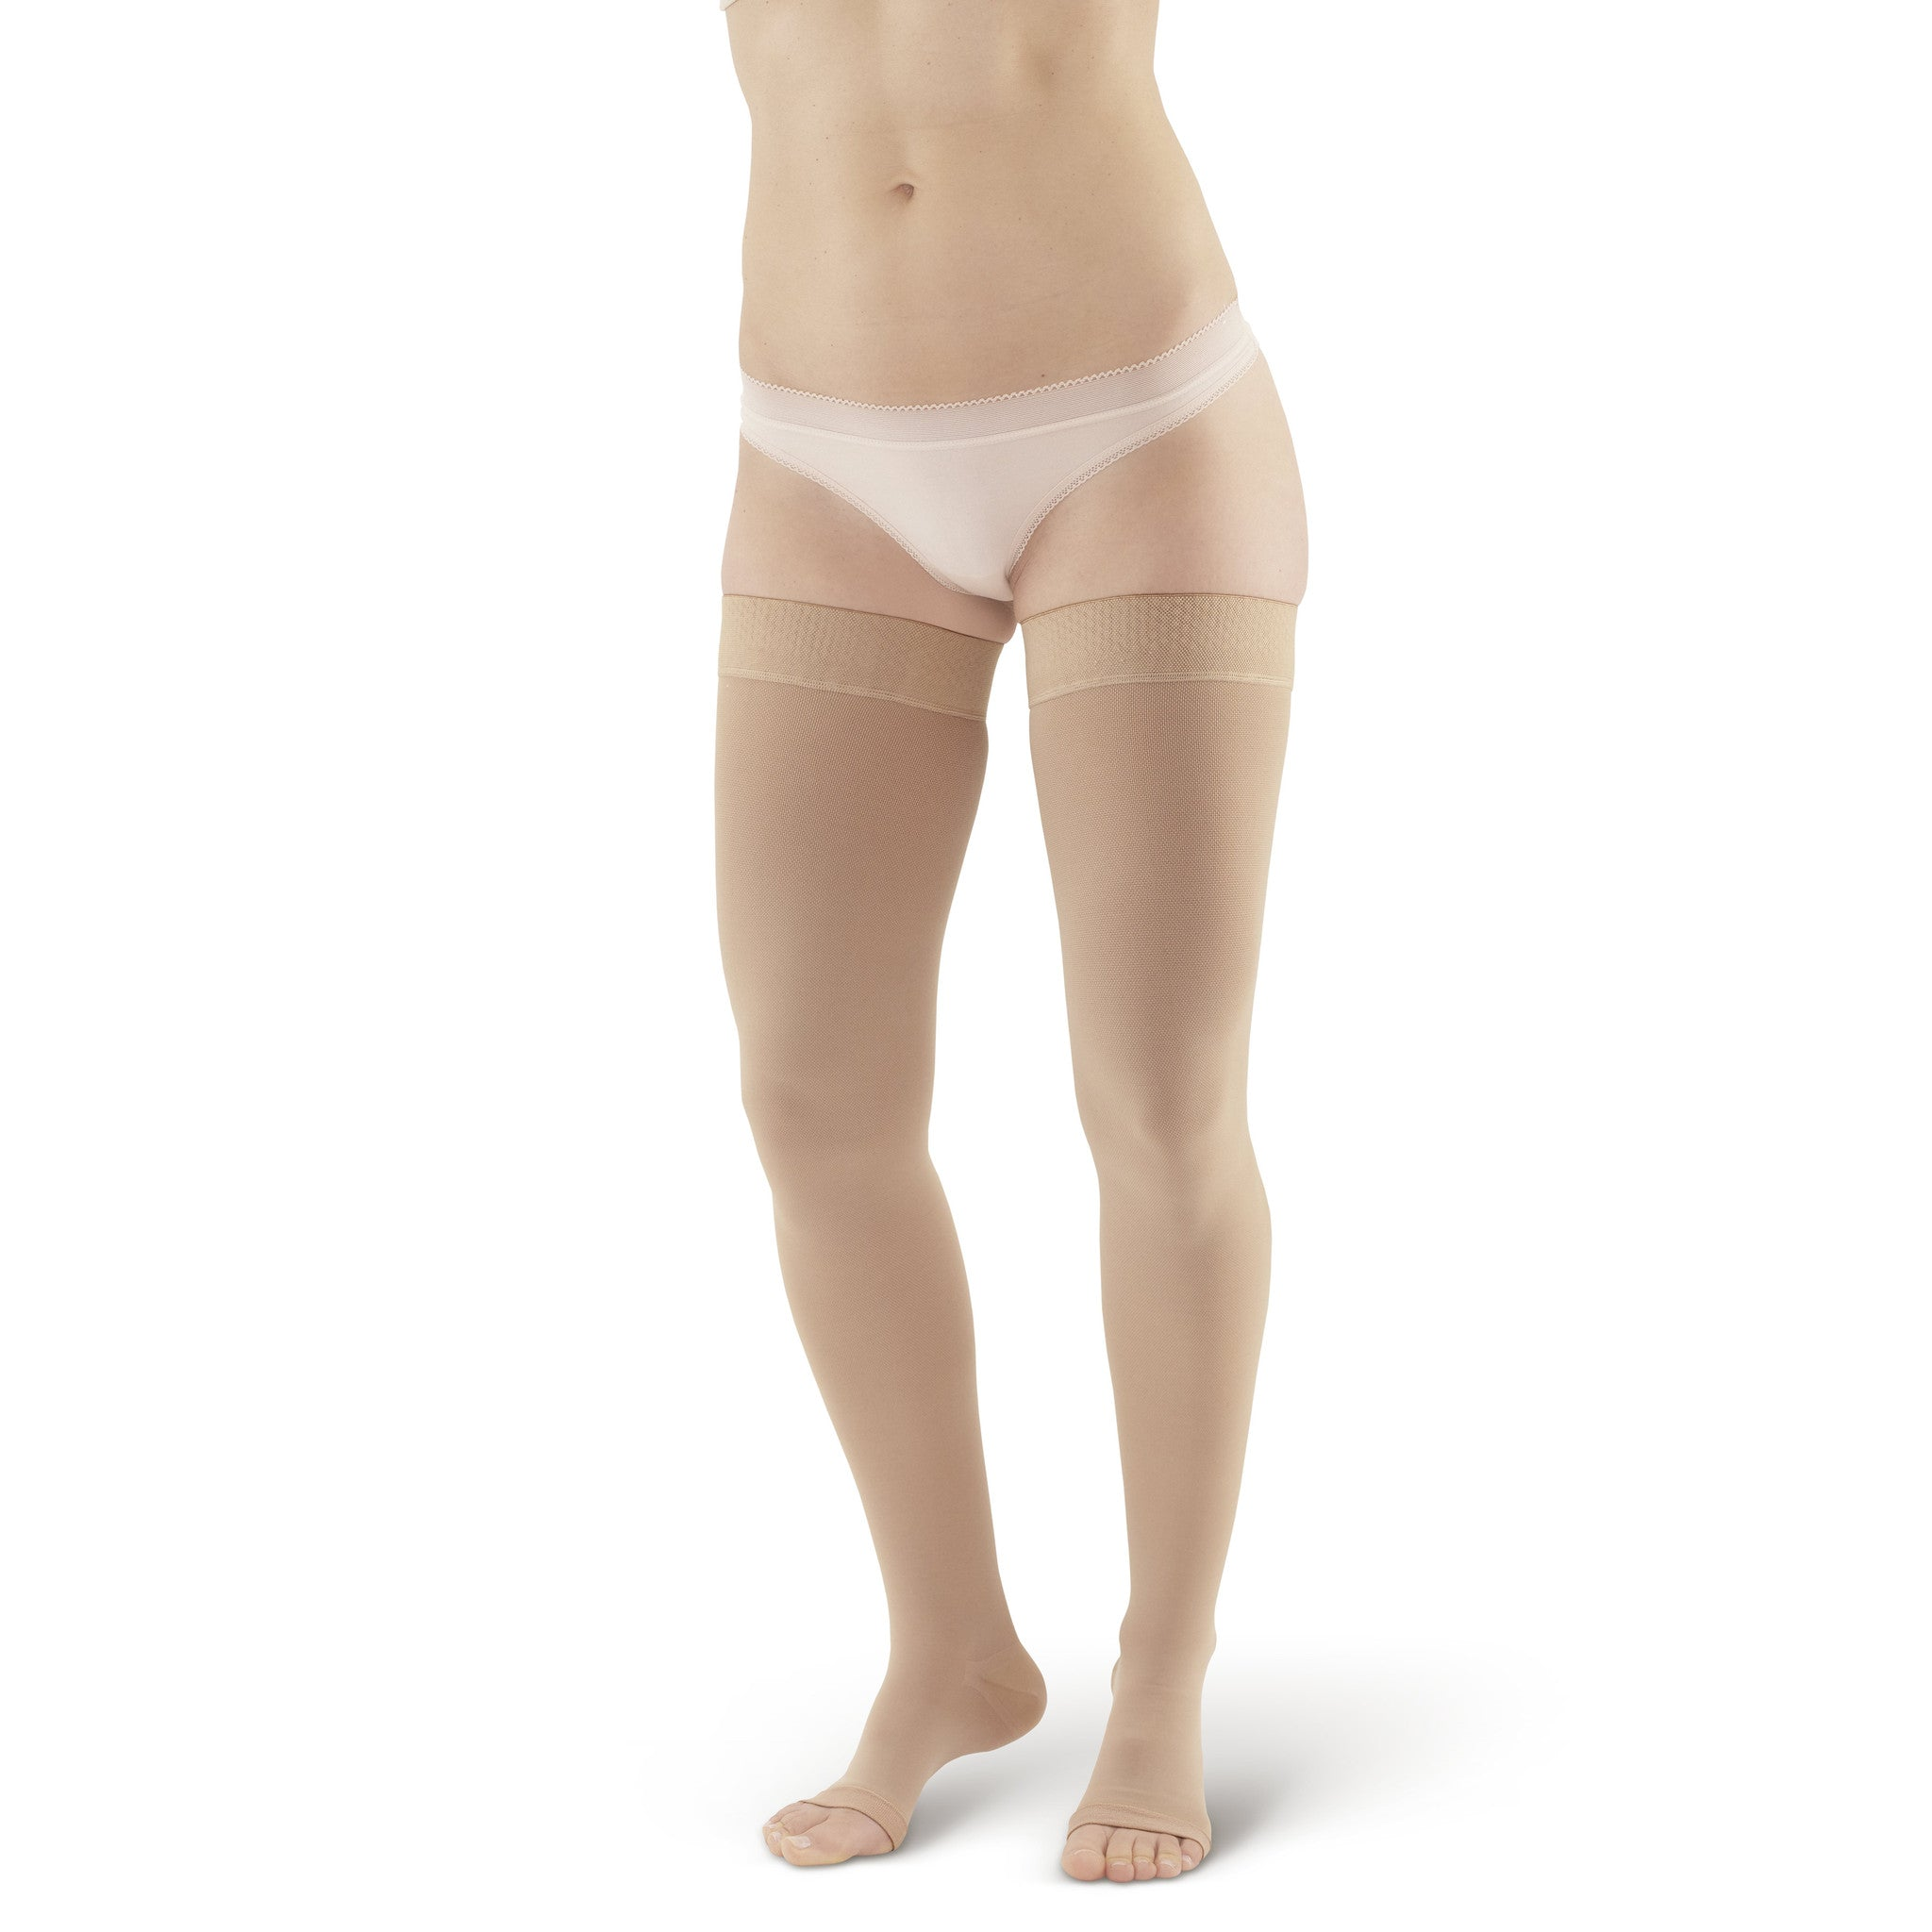 832947326 AW Style 212 Medical Support Open Toe Thigh Highs w  Sili Dot Band - 20 ...